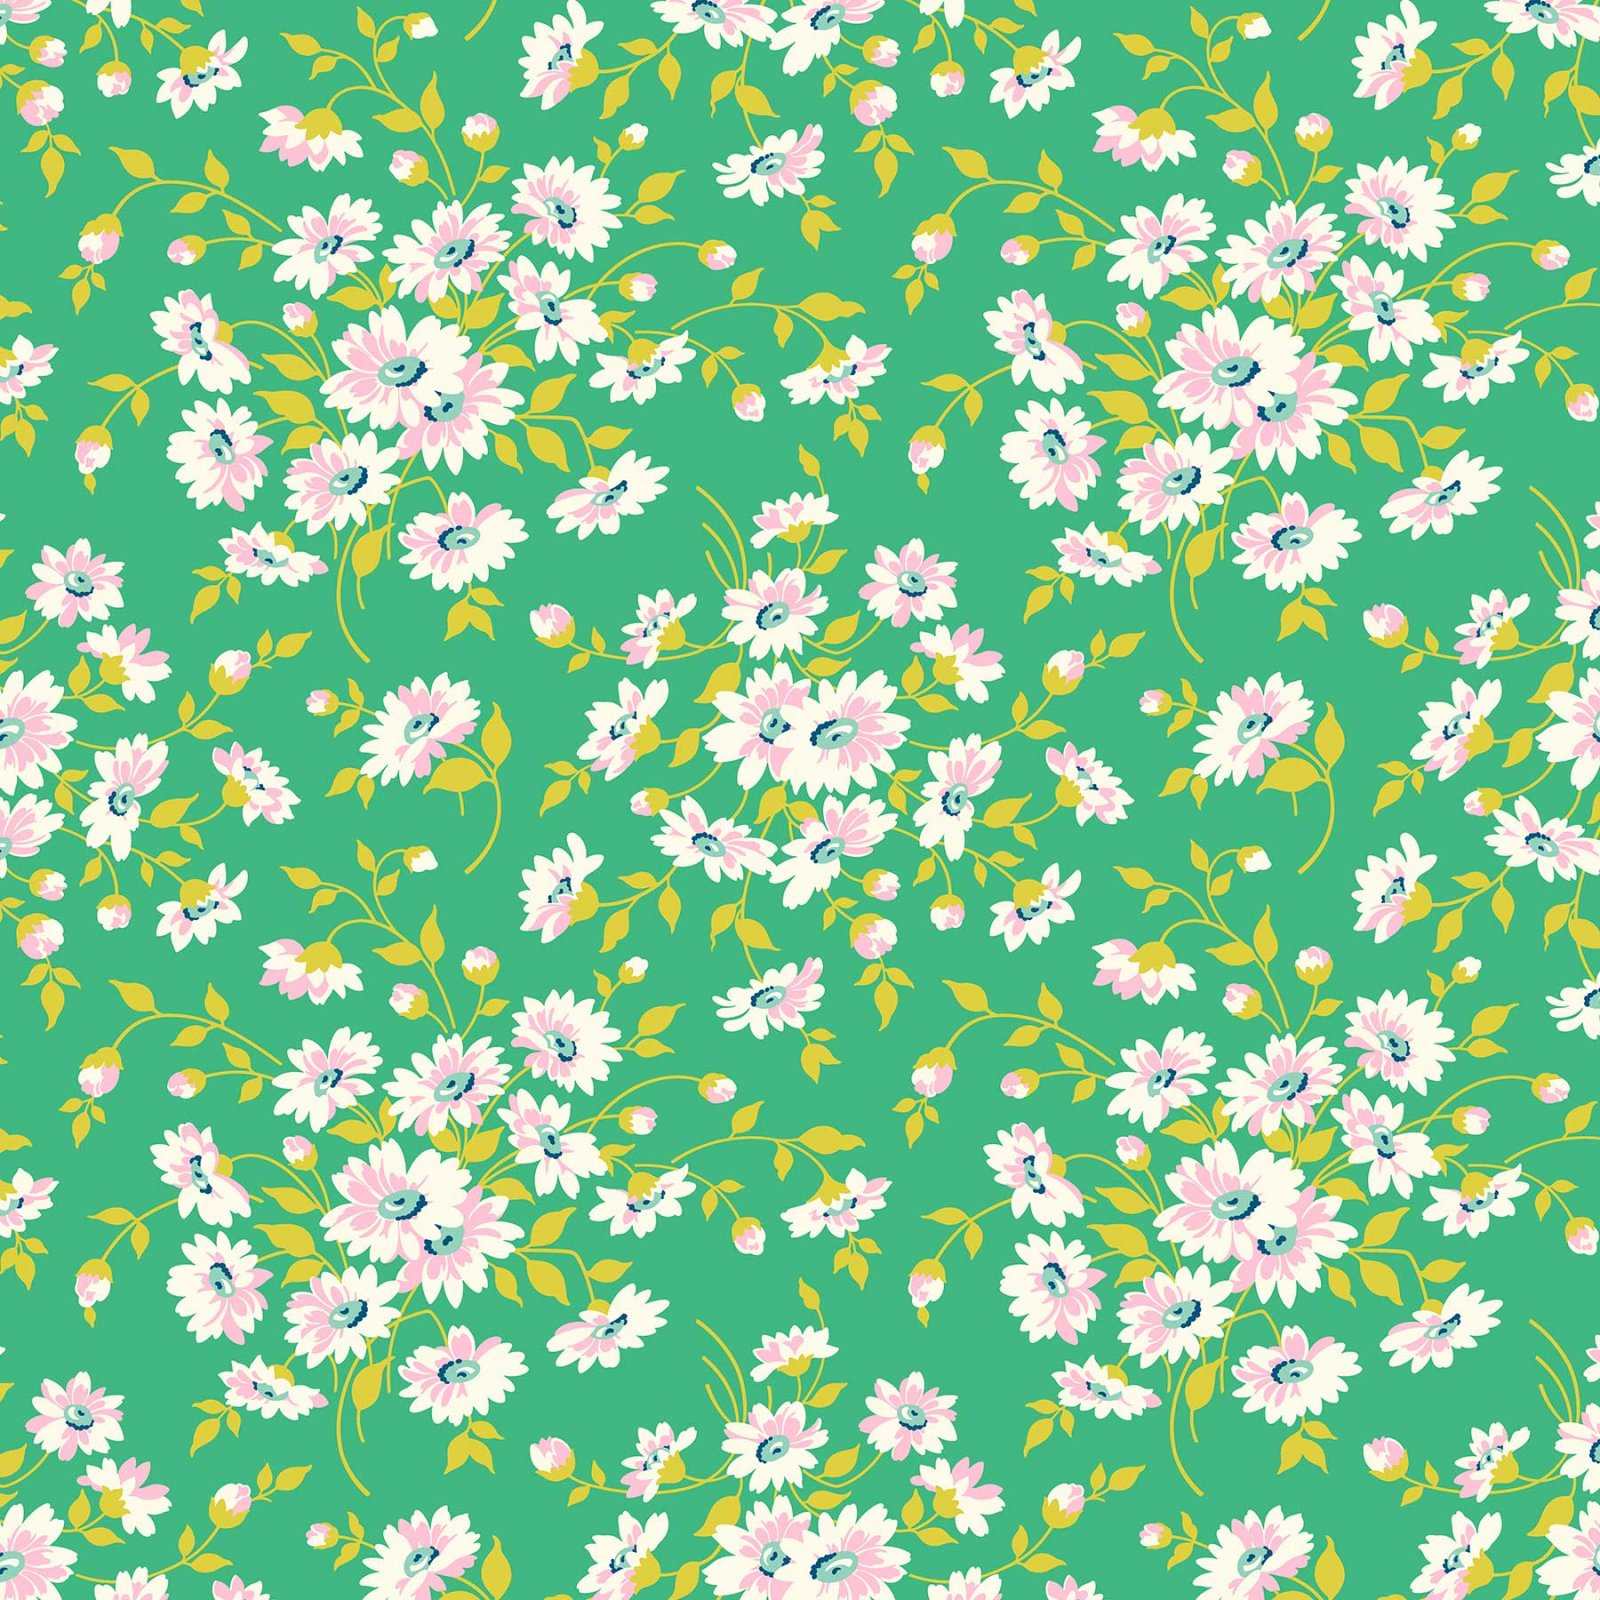 True Kisses Daydream Teal 108 Inch Wide Backing B90365 65